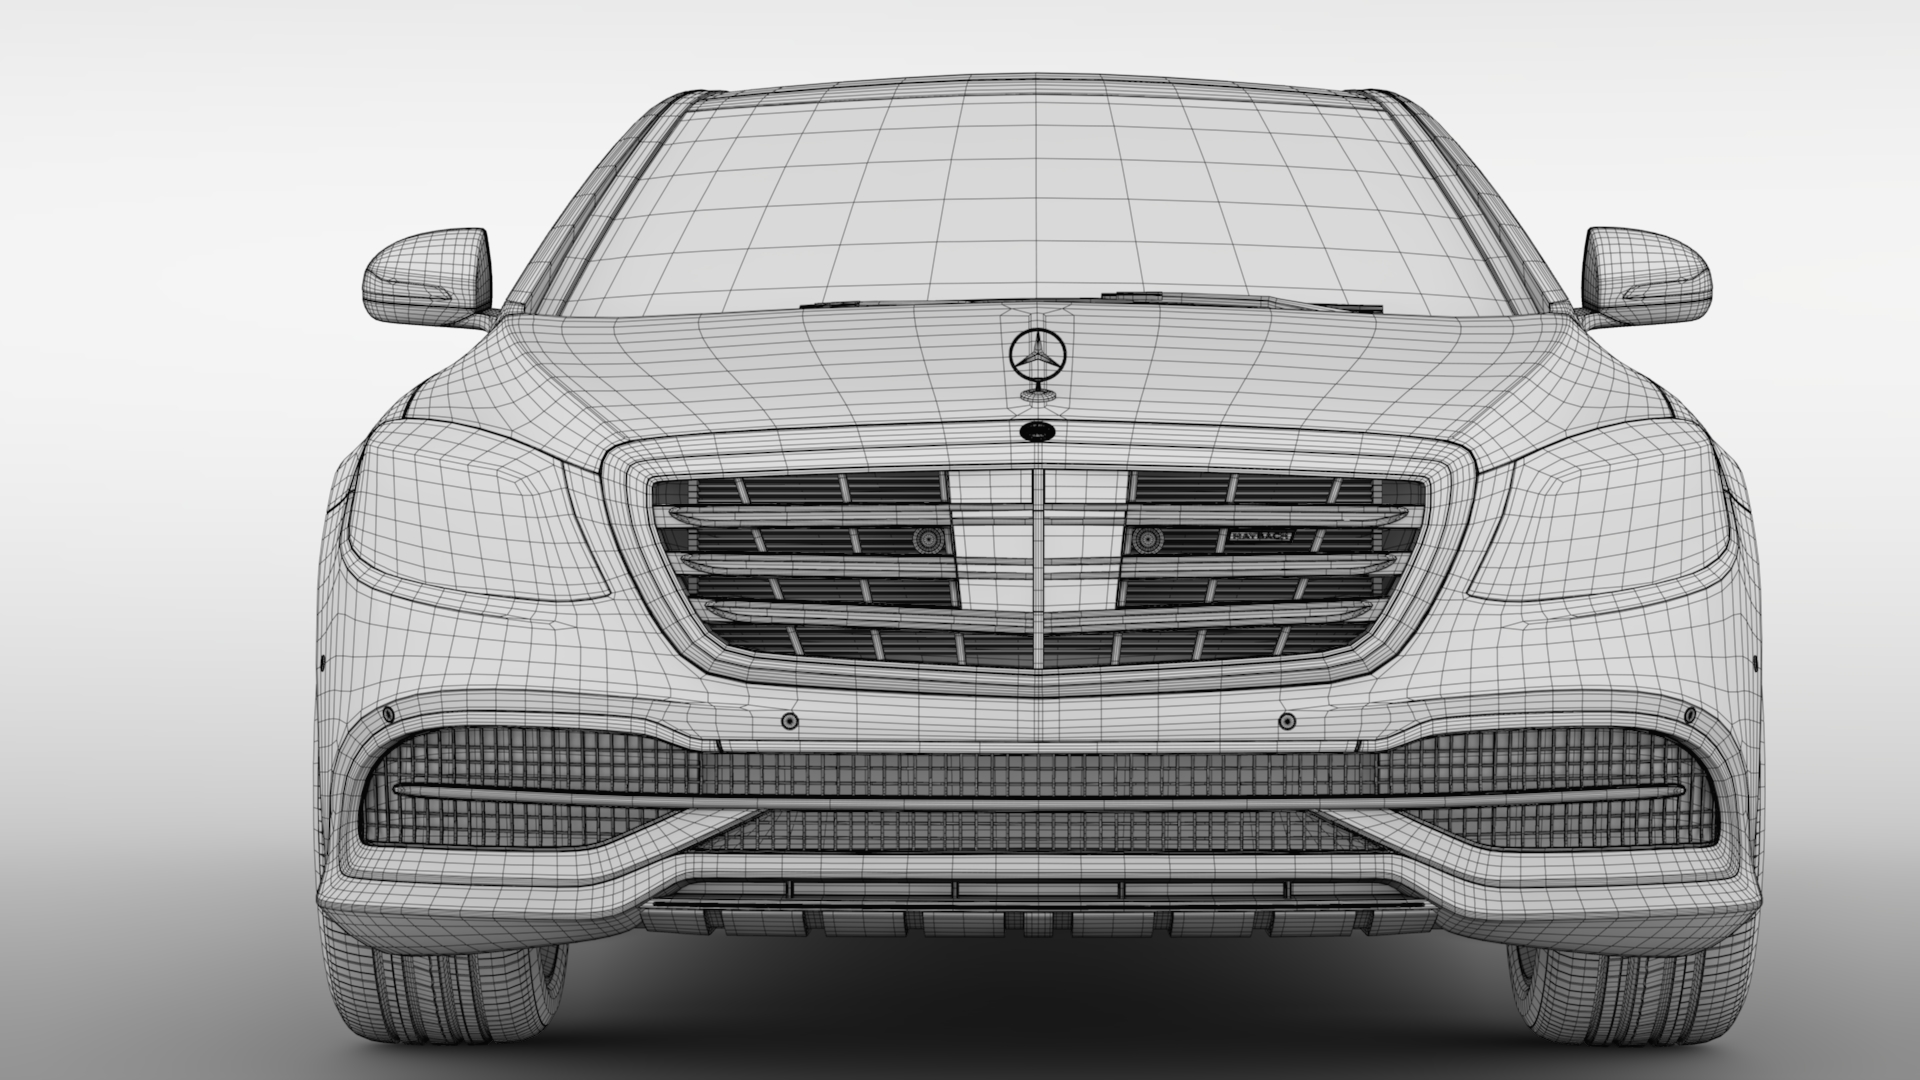 mercedes maybach s 560 4matic x222 2018 3d model 3ds max fbx c4d lwo ma mb hrc xsi obj 284444